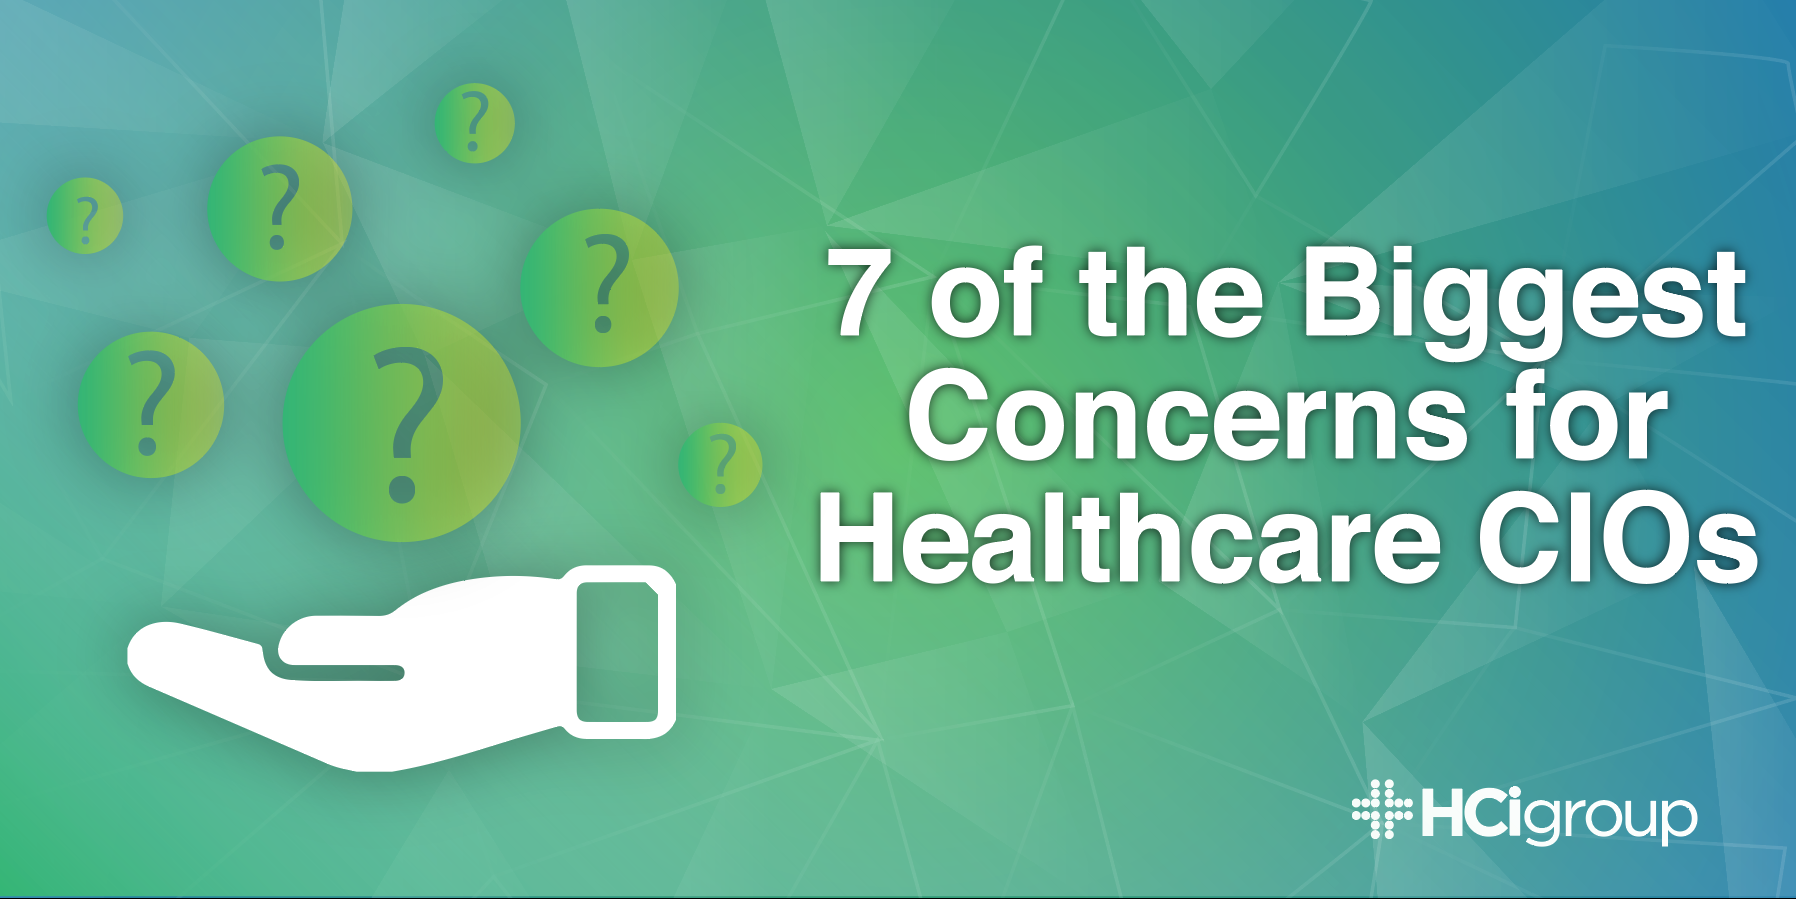 Seven of the Biggest Concerns for Healthcare CIOs